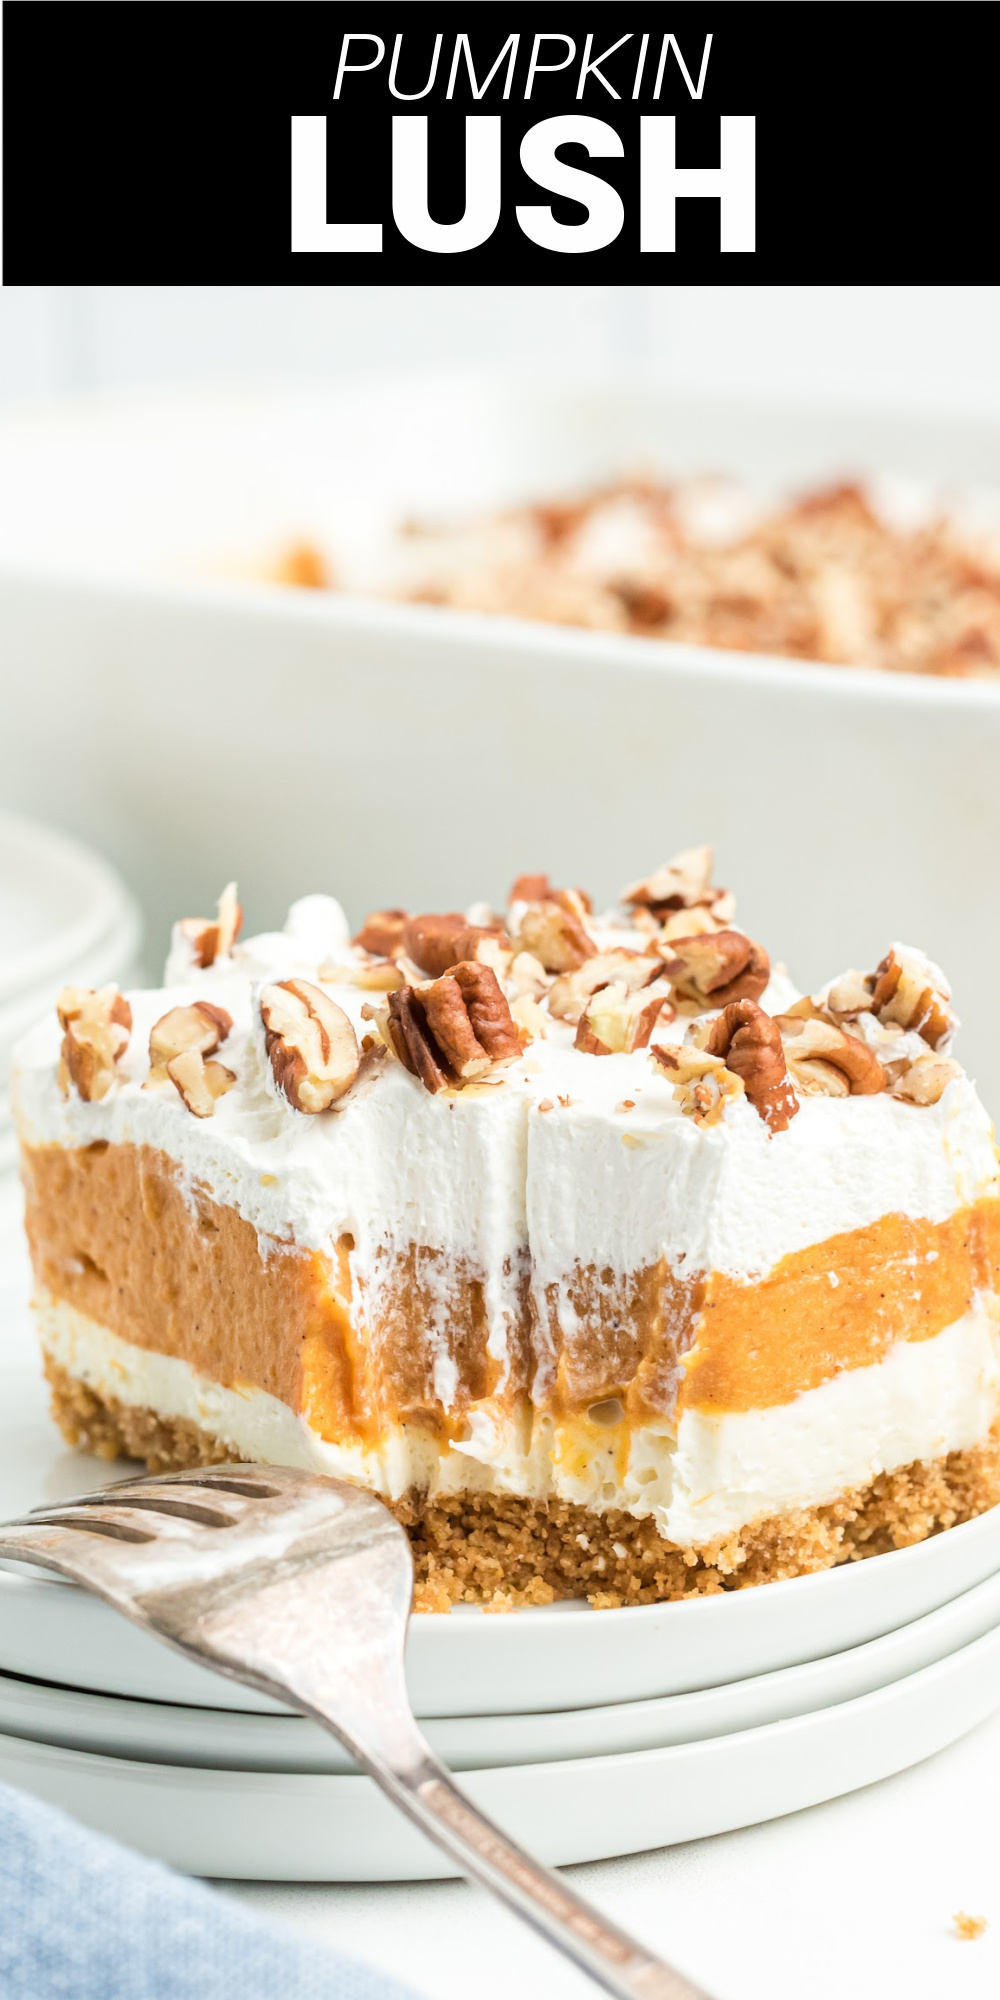 Pumpkin lush is an easy dessert with layers of cream cheese and whipped topping with a creamy pumpkin layer in between all on top of a homemade graham cracker crust.